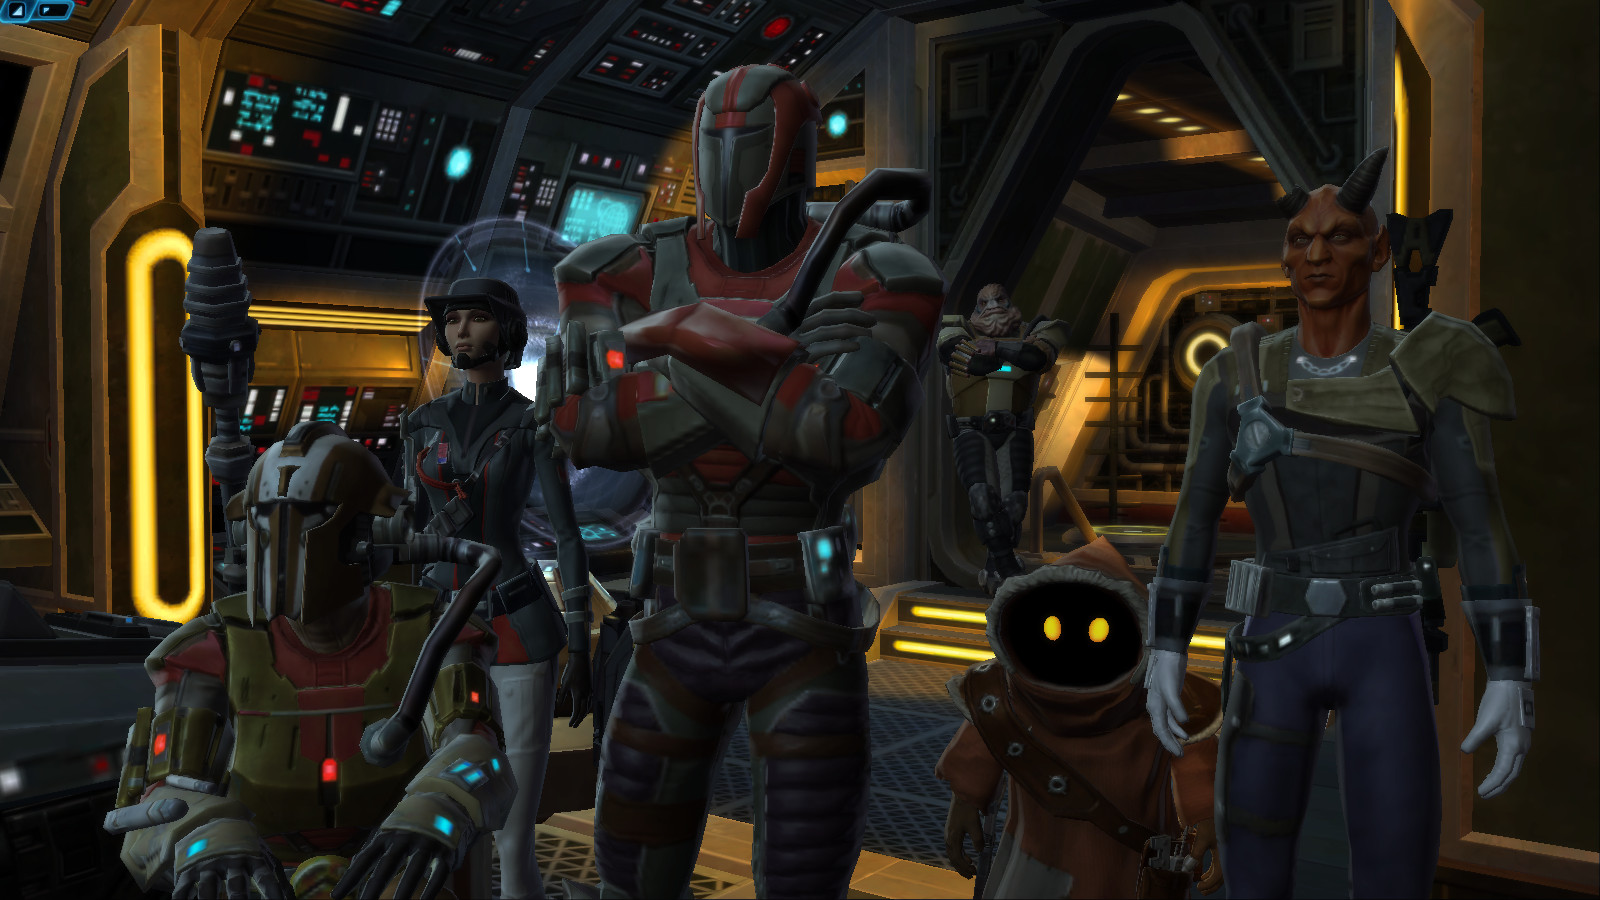 Bounty hunter crew by mando christian on deviantart bounty hunter crew by mando christian buycottarizona Image collections